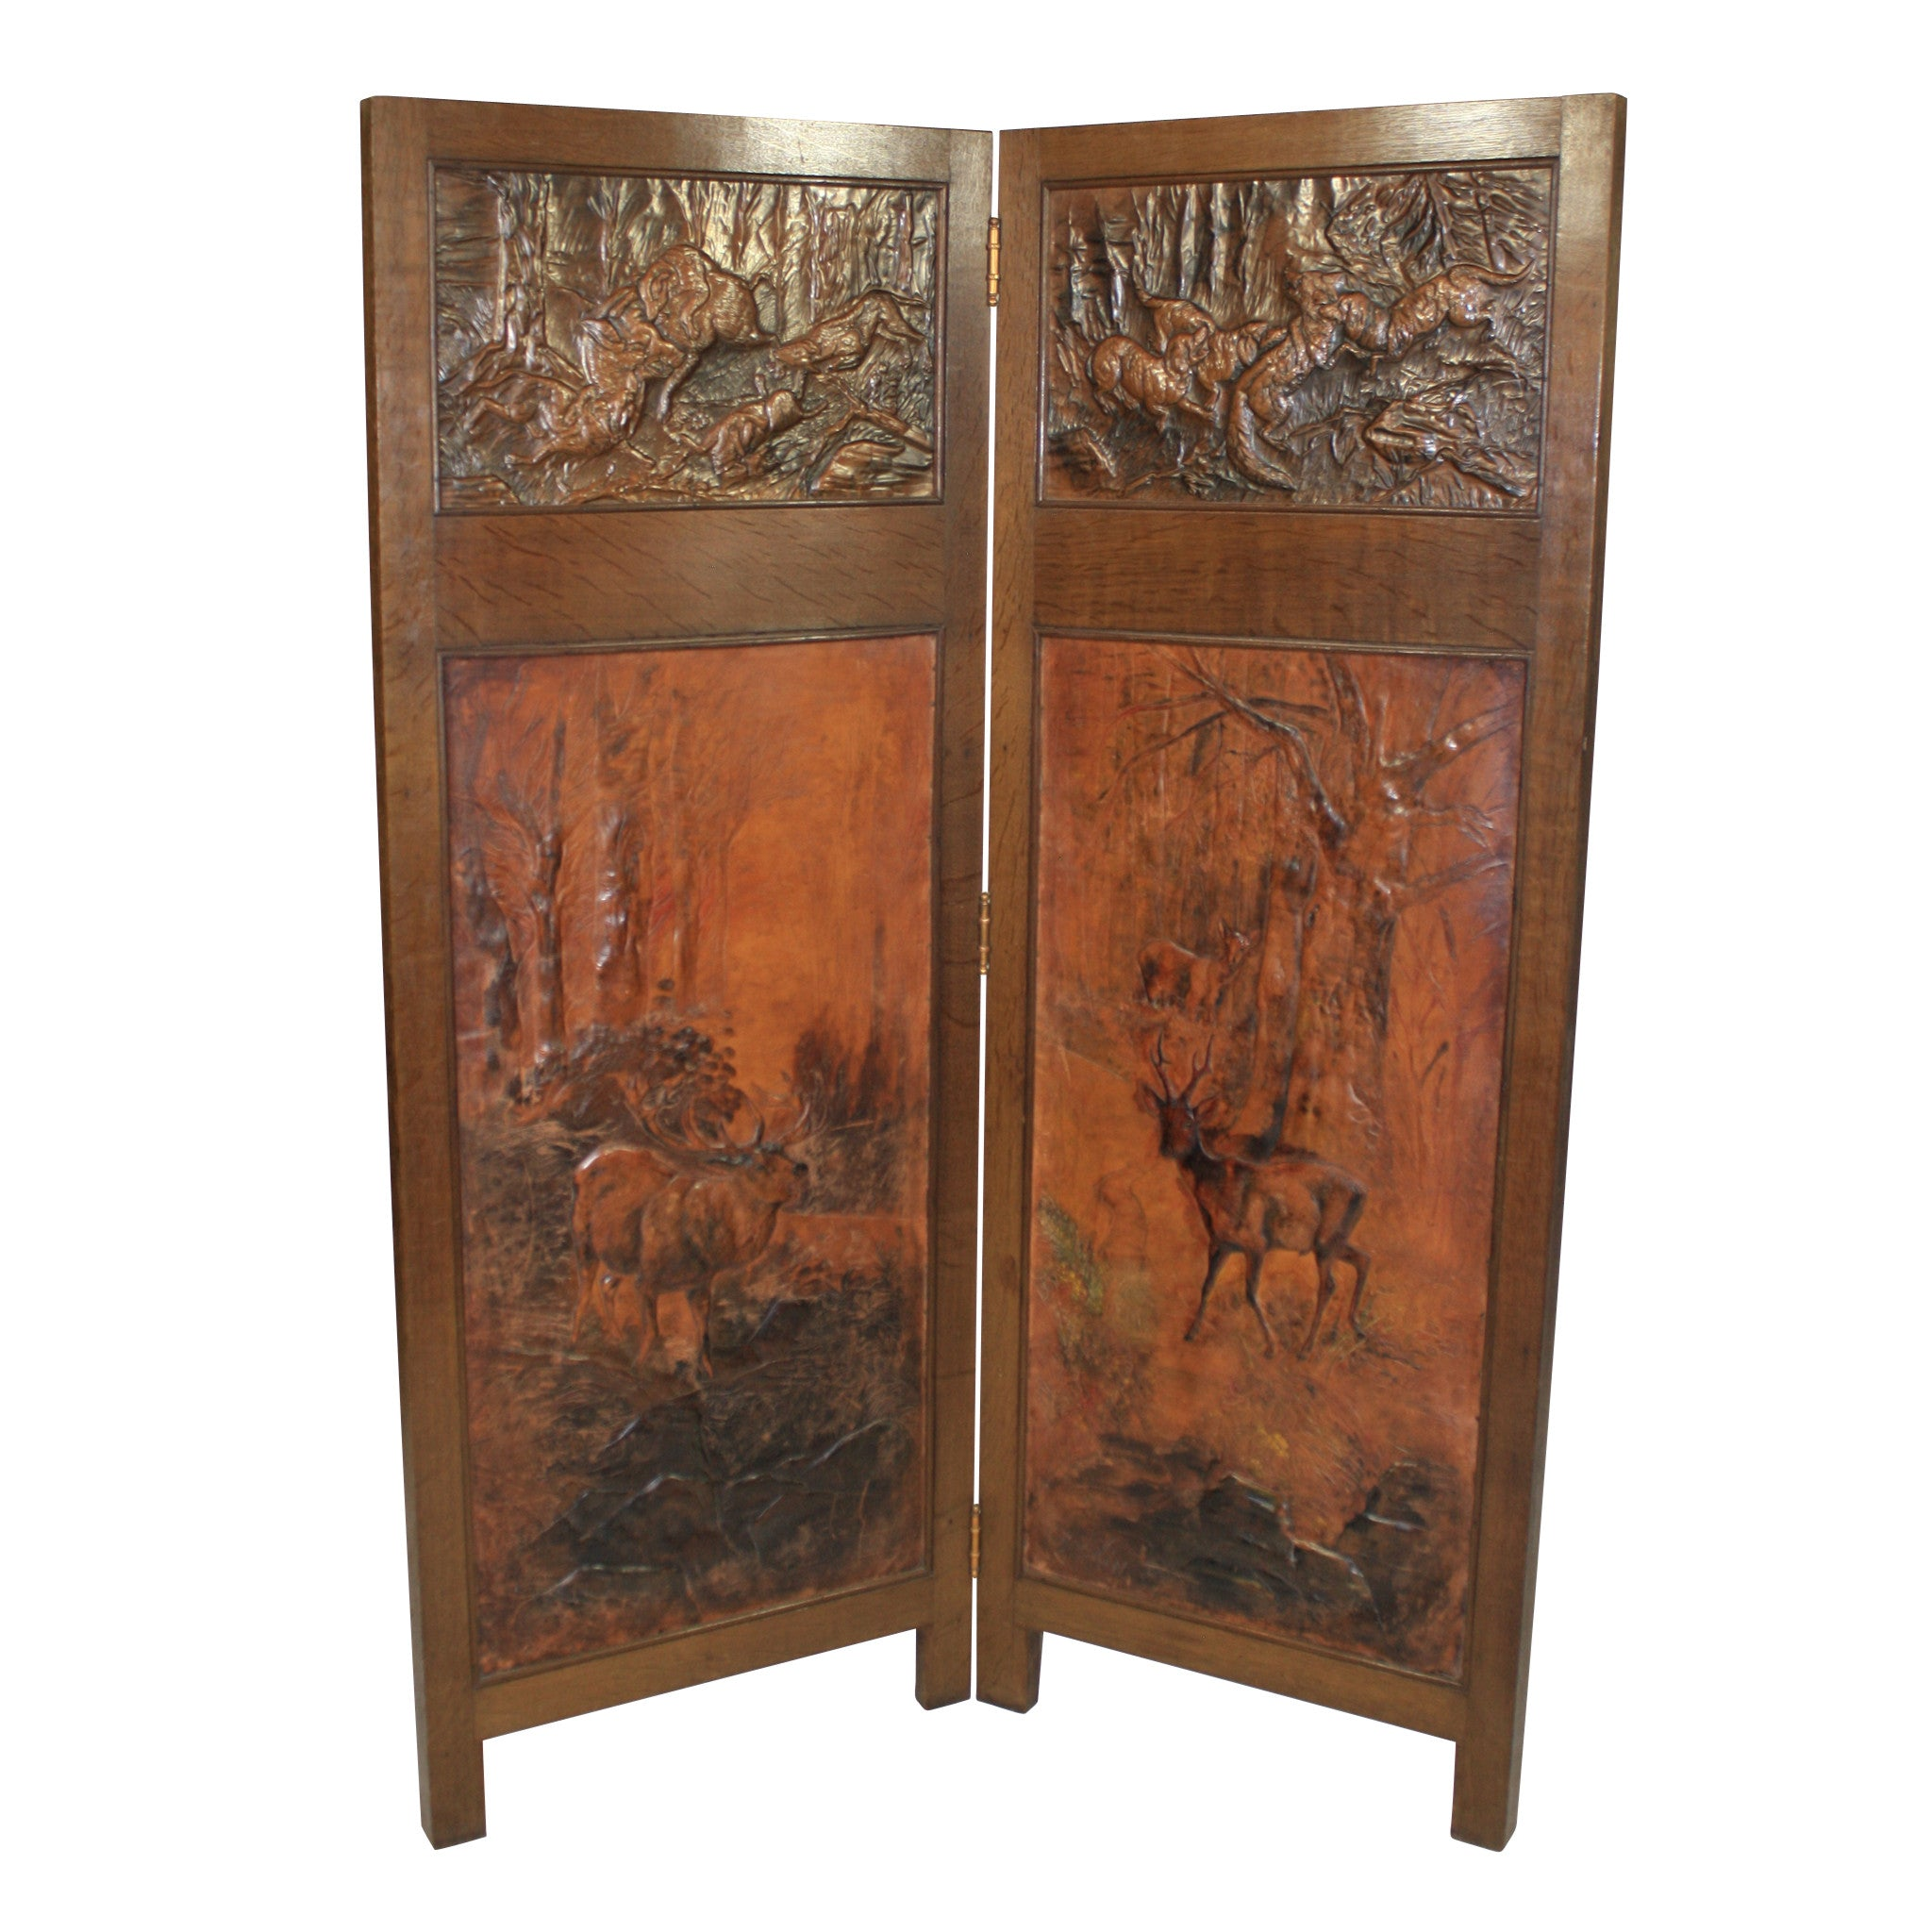 Pressed Leather and Copper Screen (1stdibs)